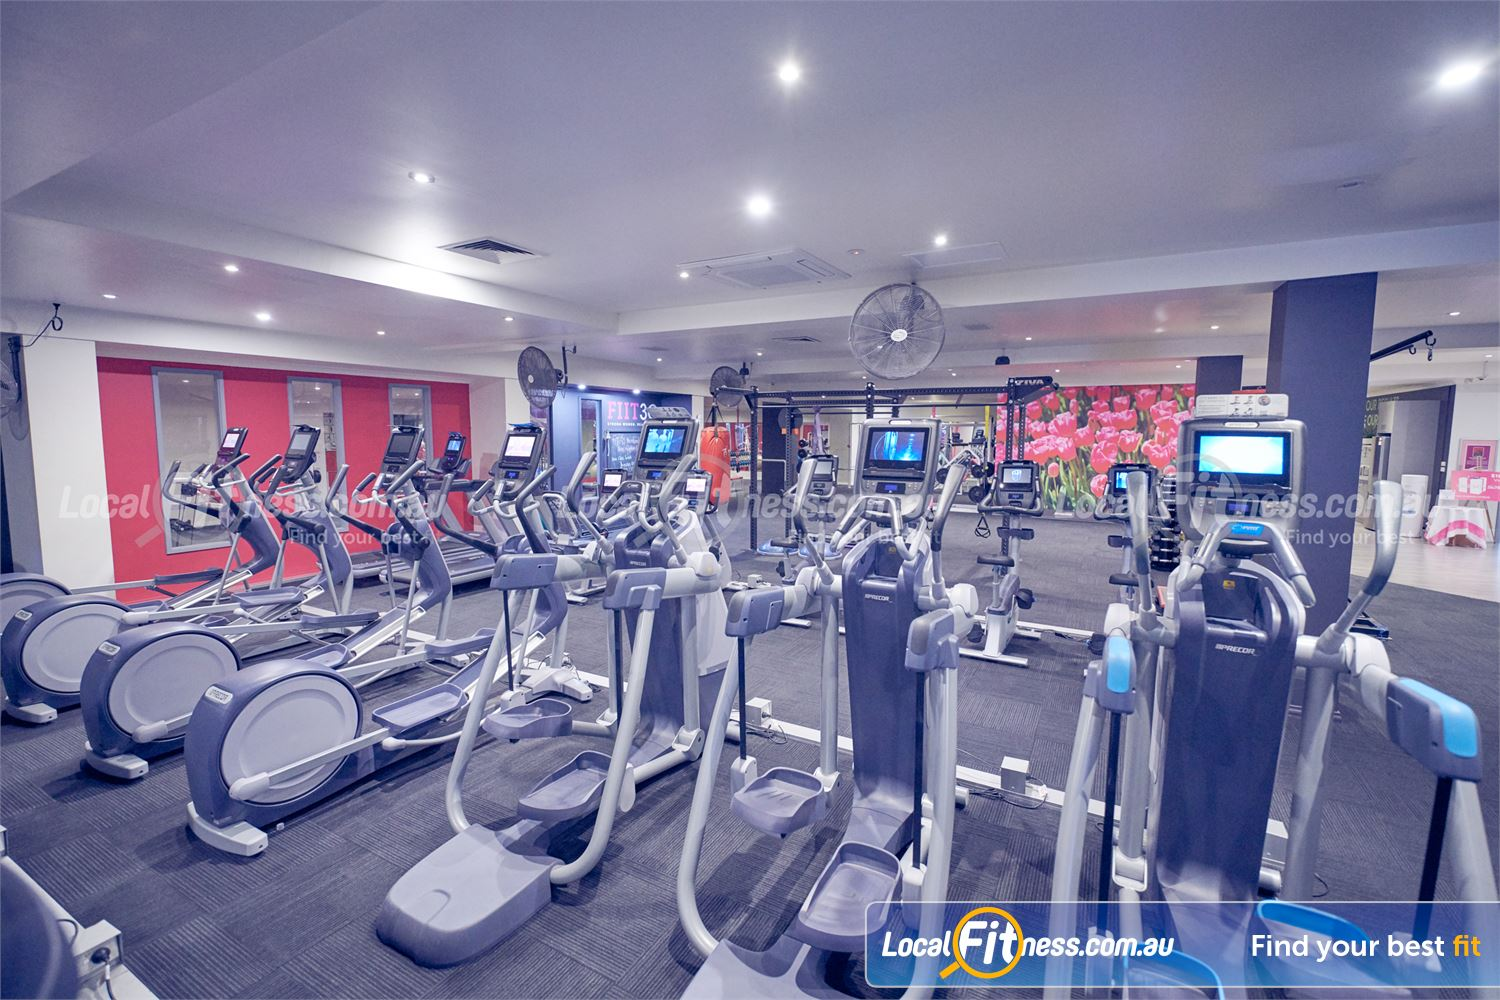 Fernwood Fitness Near Templestowe Lower Enjoy a cardio workout when you want with 24 hour Bulleen gym access.